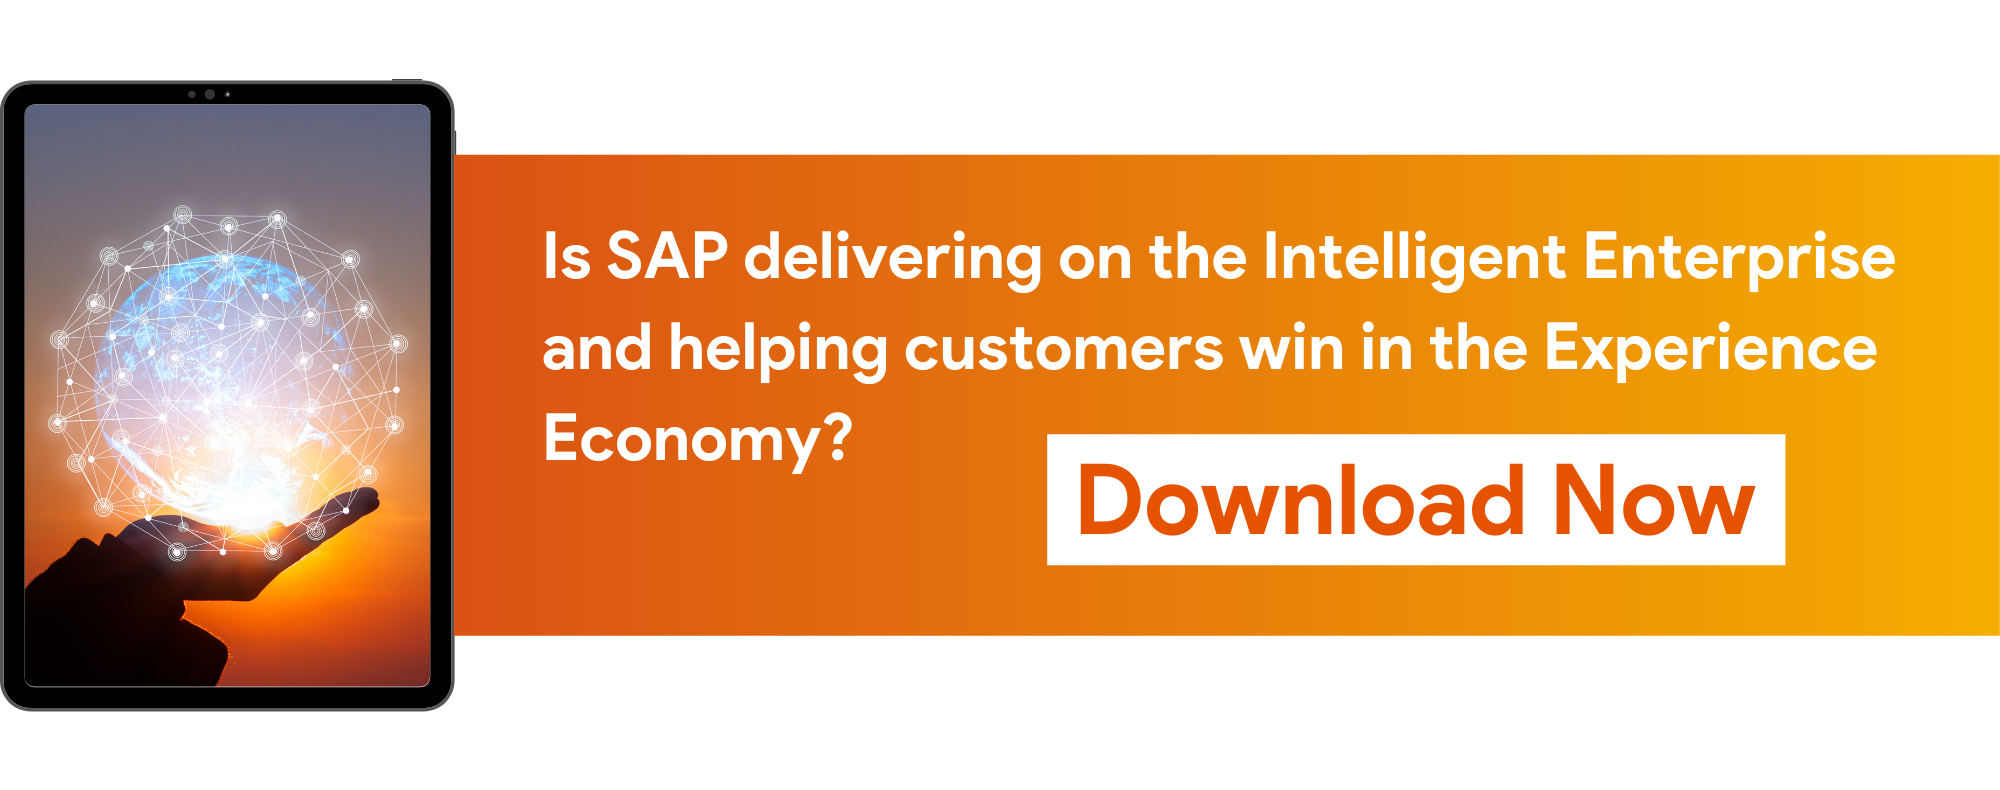 eBook - How SAP is delivering on the Intelligent Enterprise and helping customers win in the Experience Economy